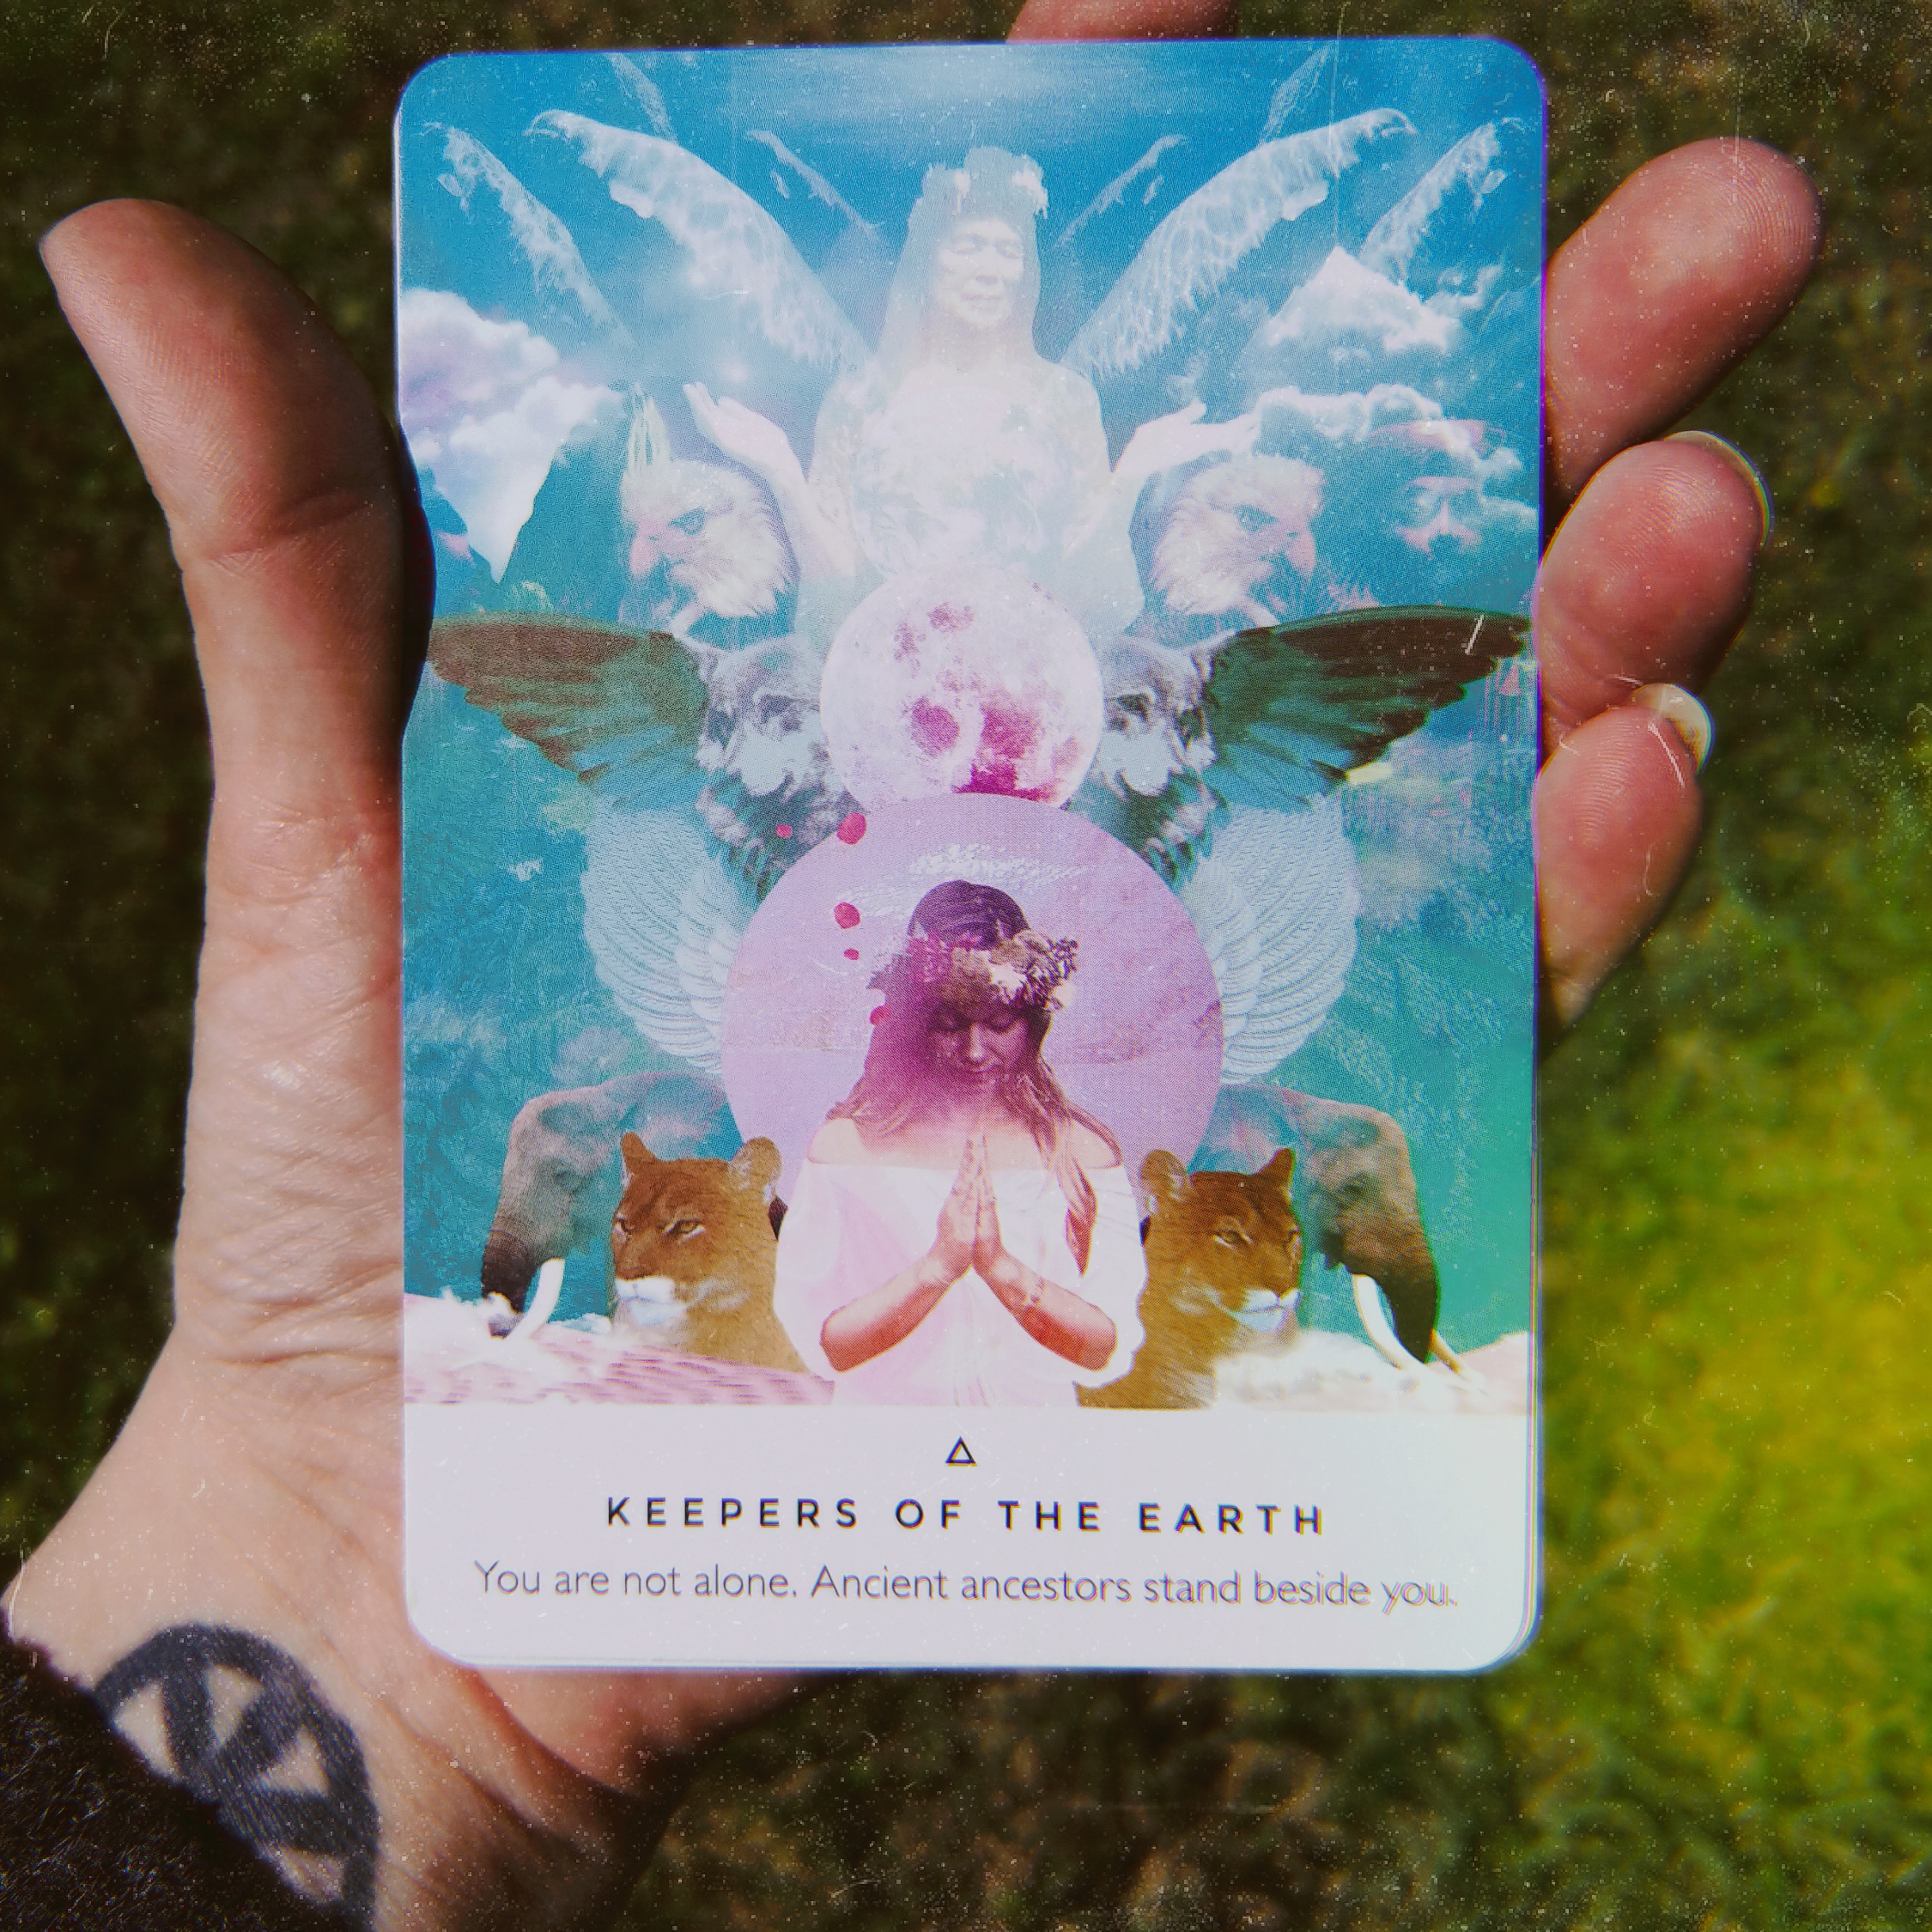 April 27, 2019 Oracle Message Your Spirit Sparkle